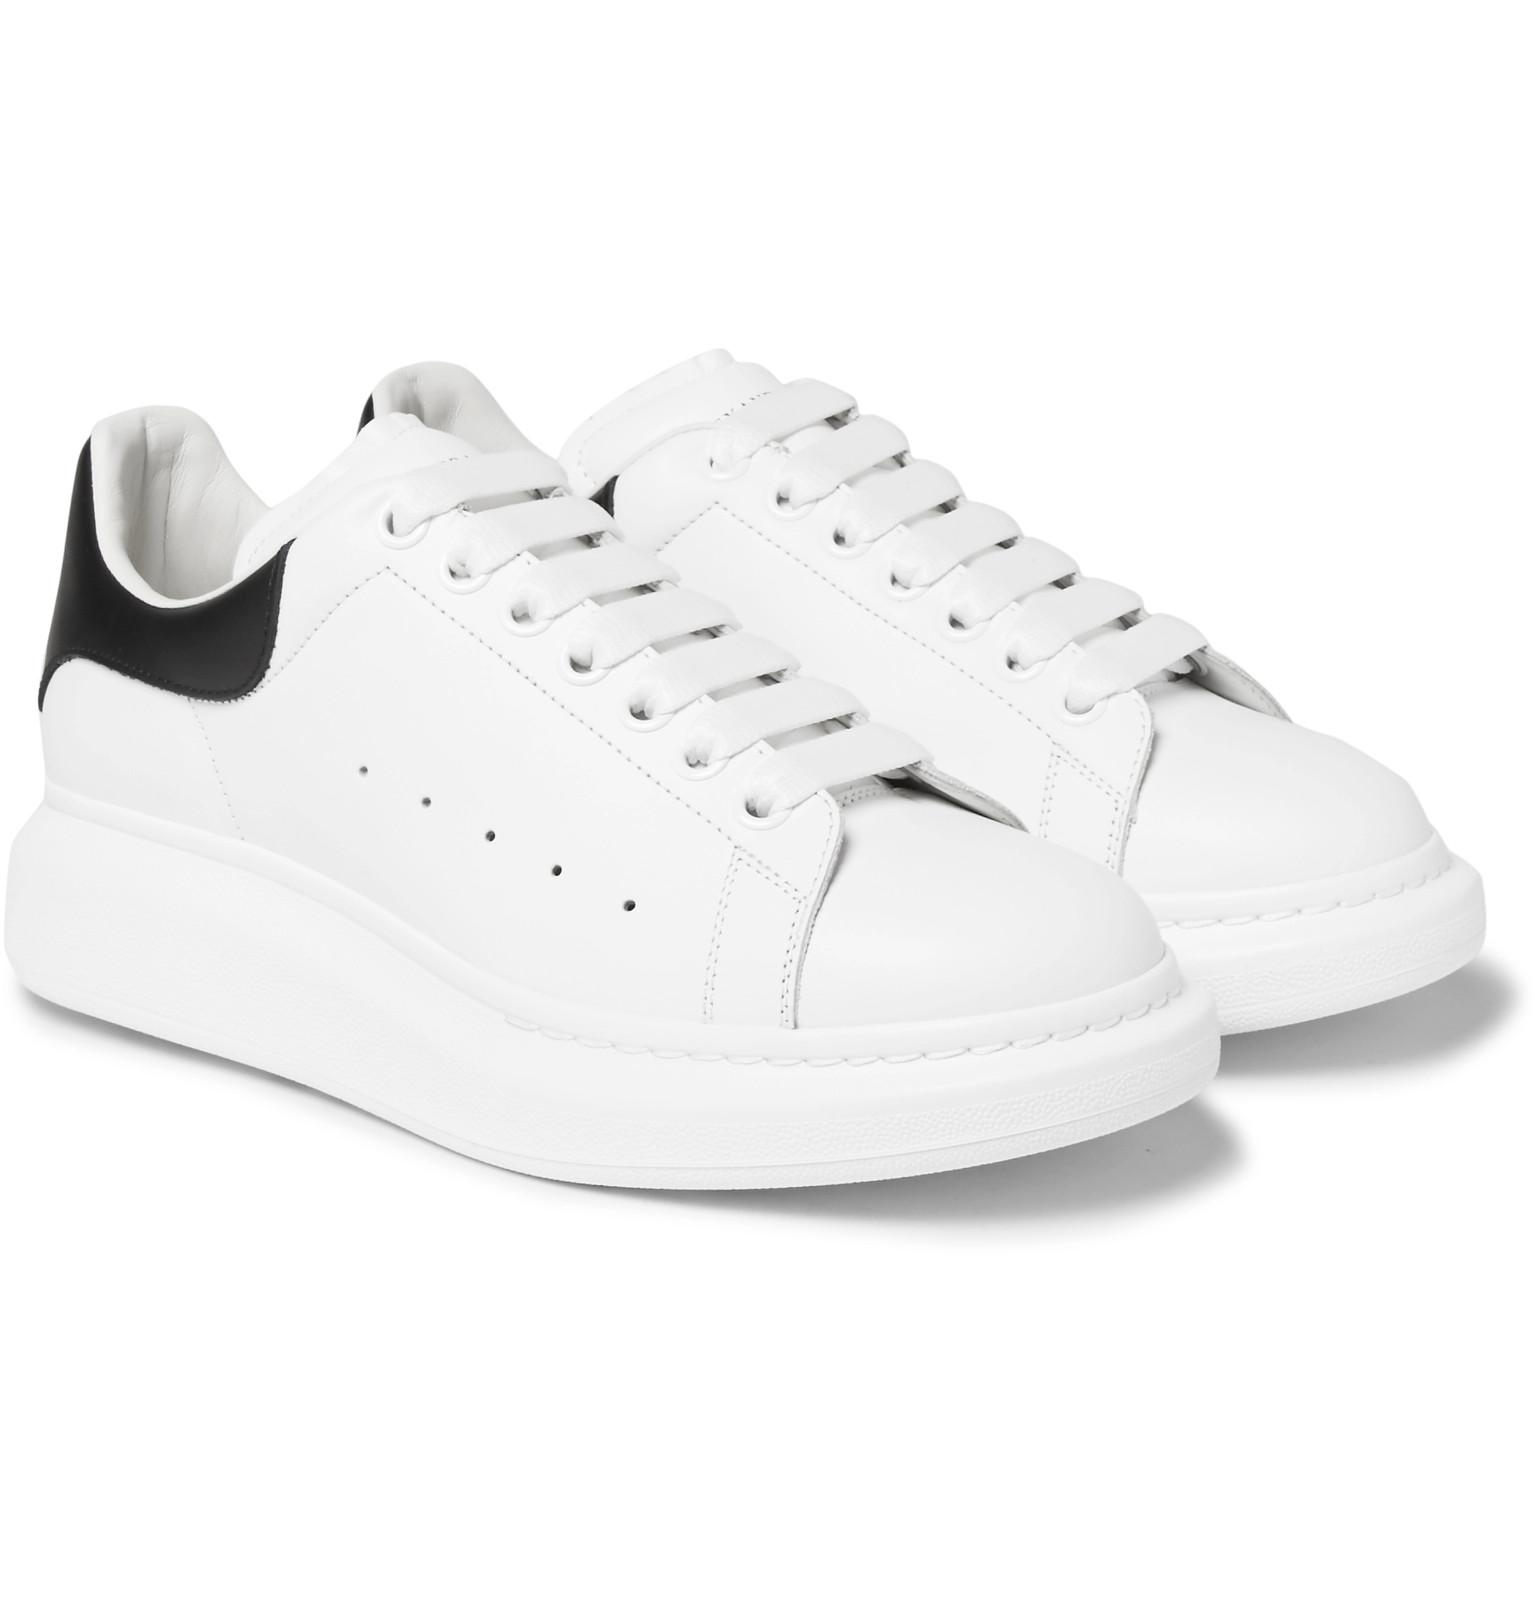 Alexander mcqueen Larry Exaggerated-sole Leather Sneakers in White for Men Lyst